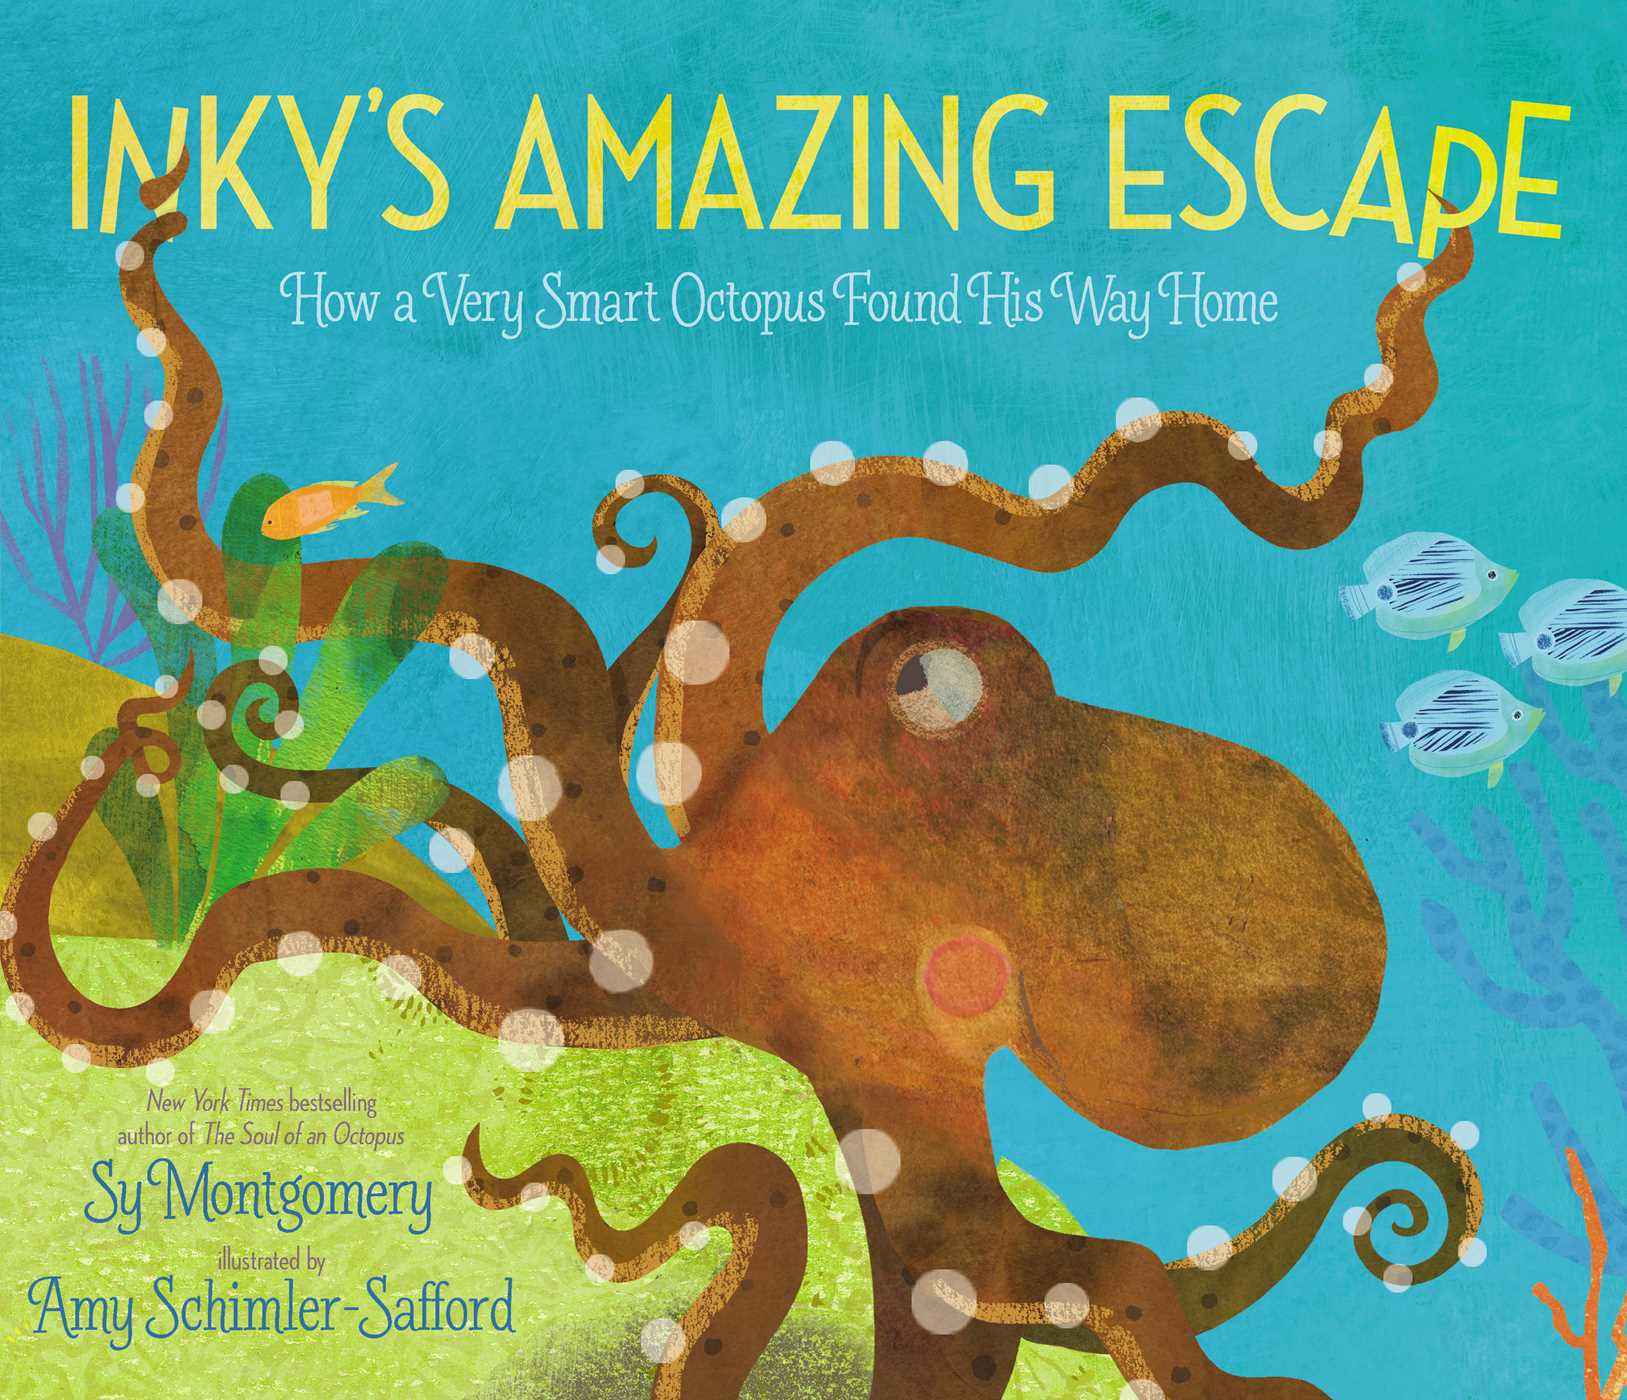 Inkys amazing escape 9781534401914 hr